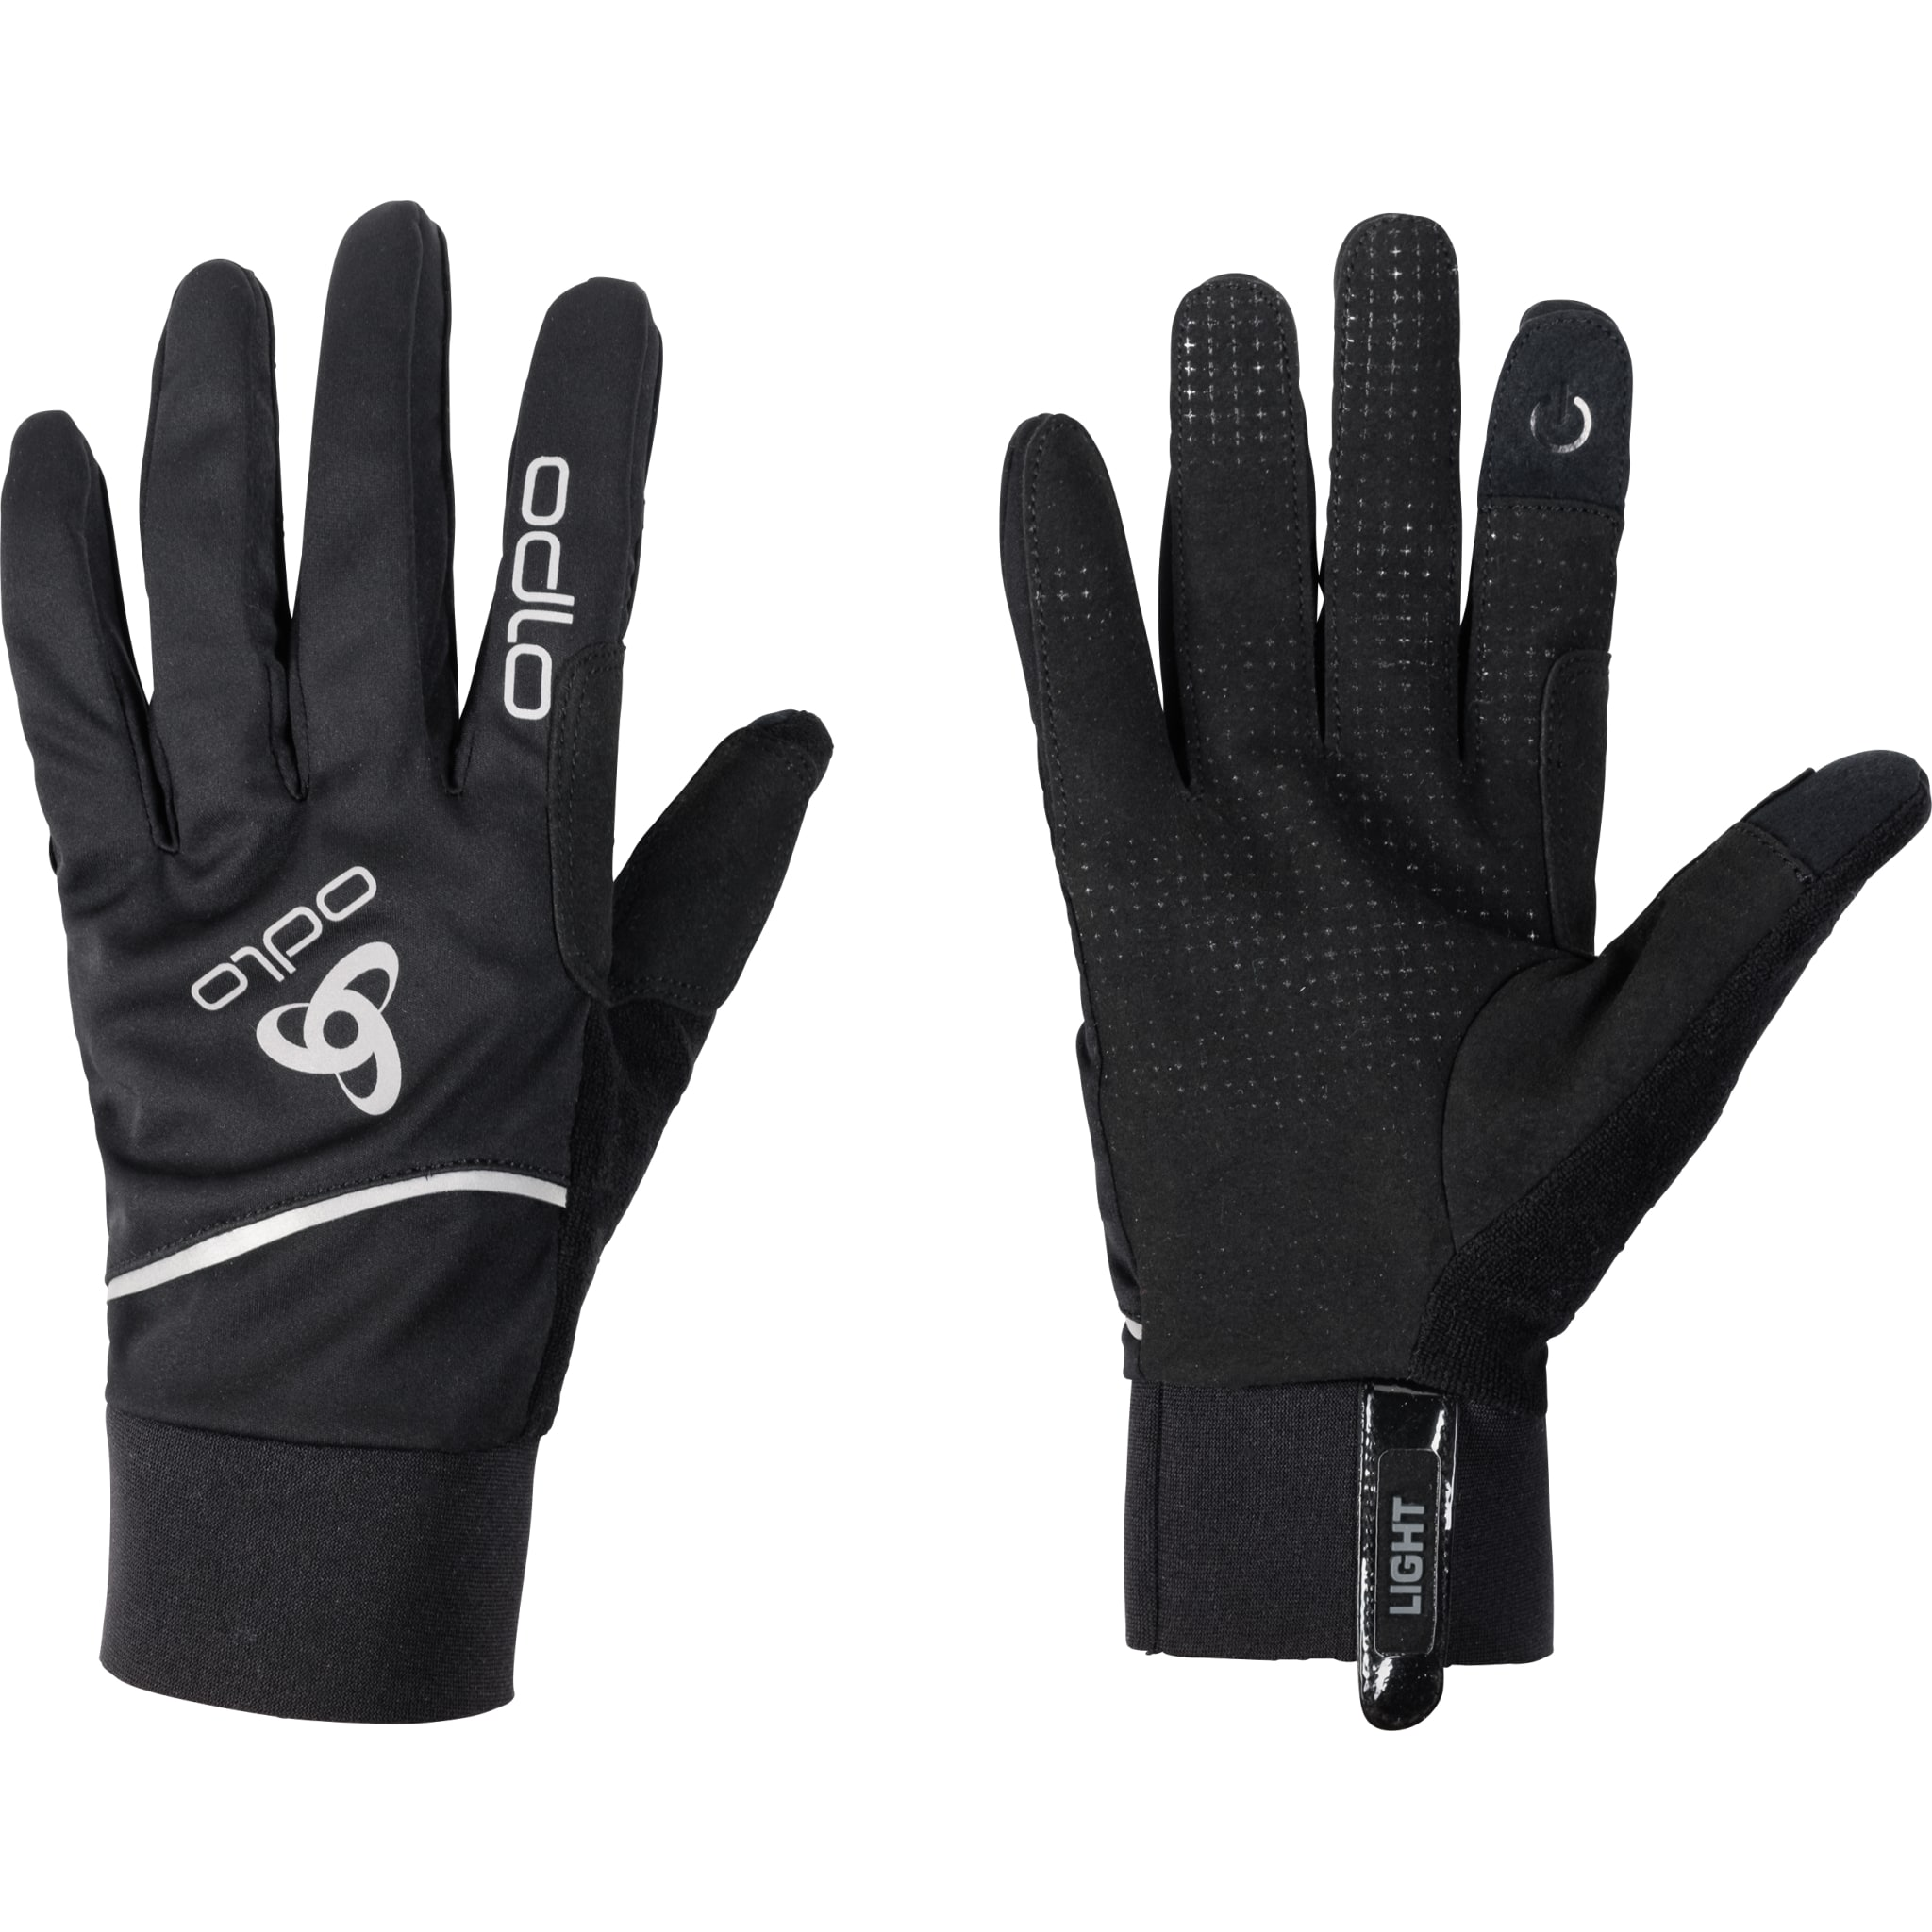 Windproof Light Gloves